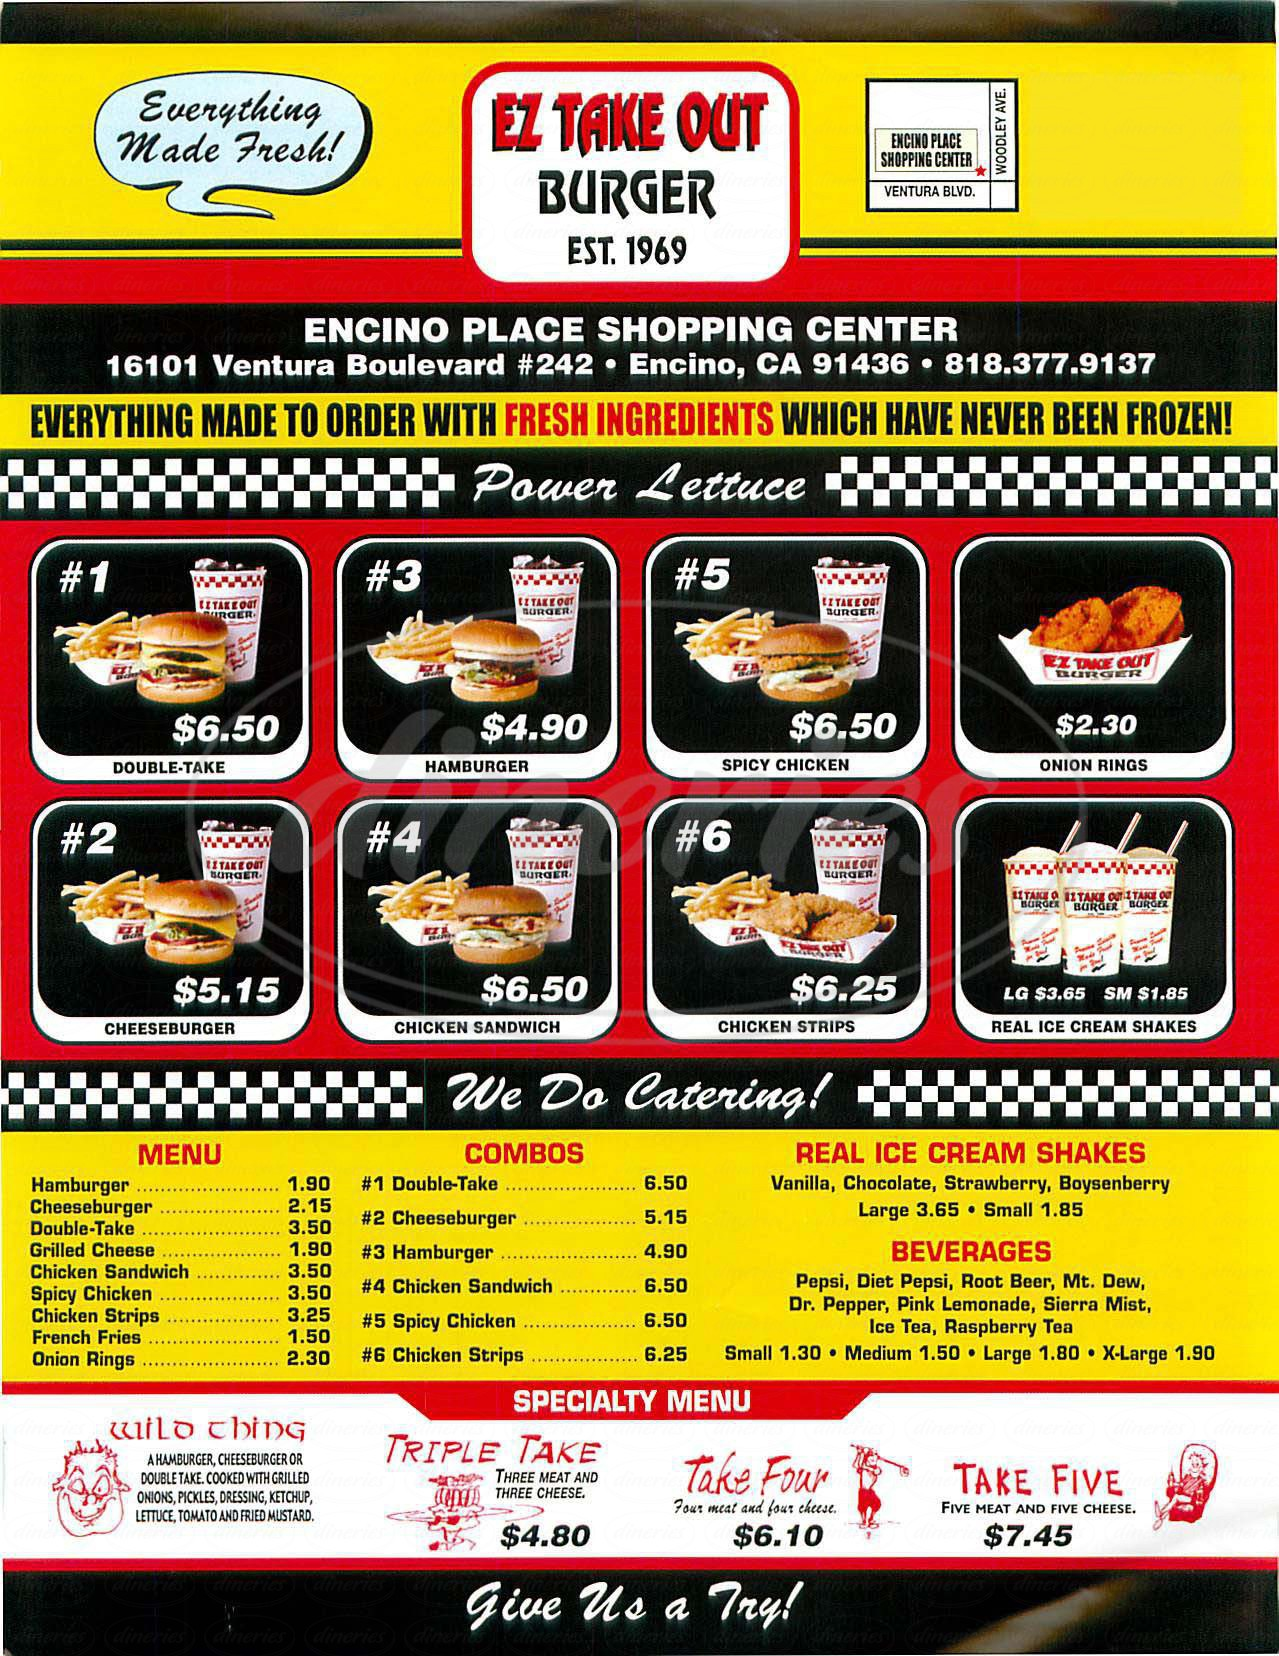 menu for EZ Take Out Burger